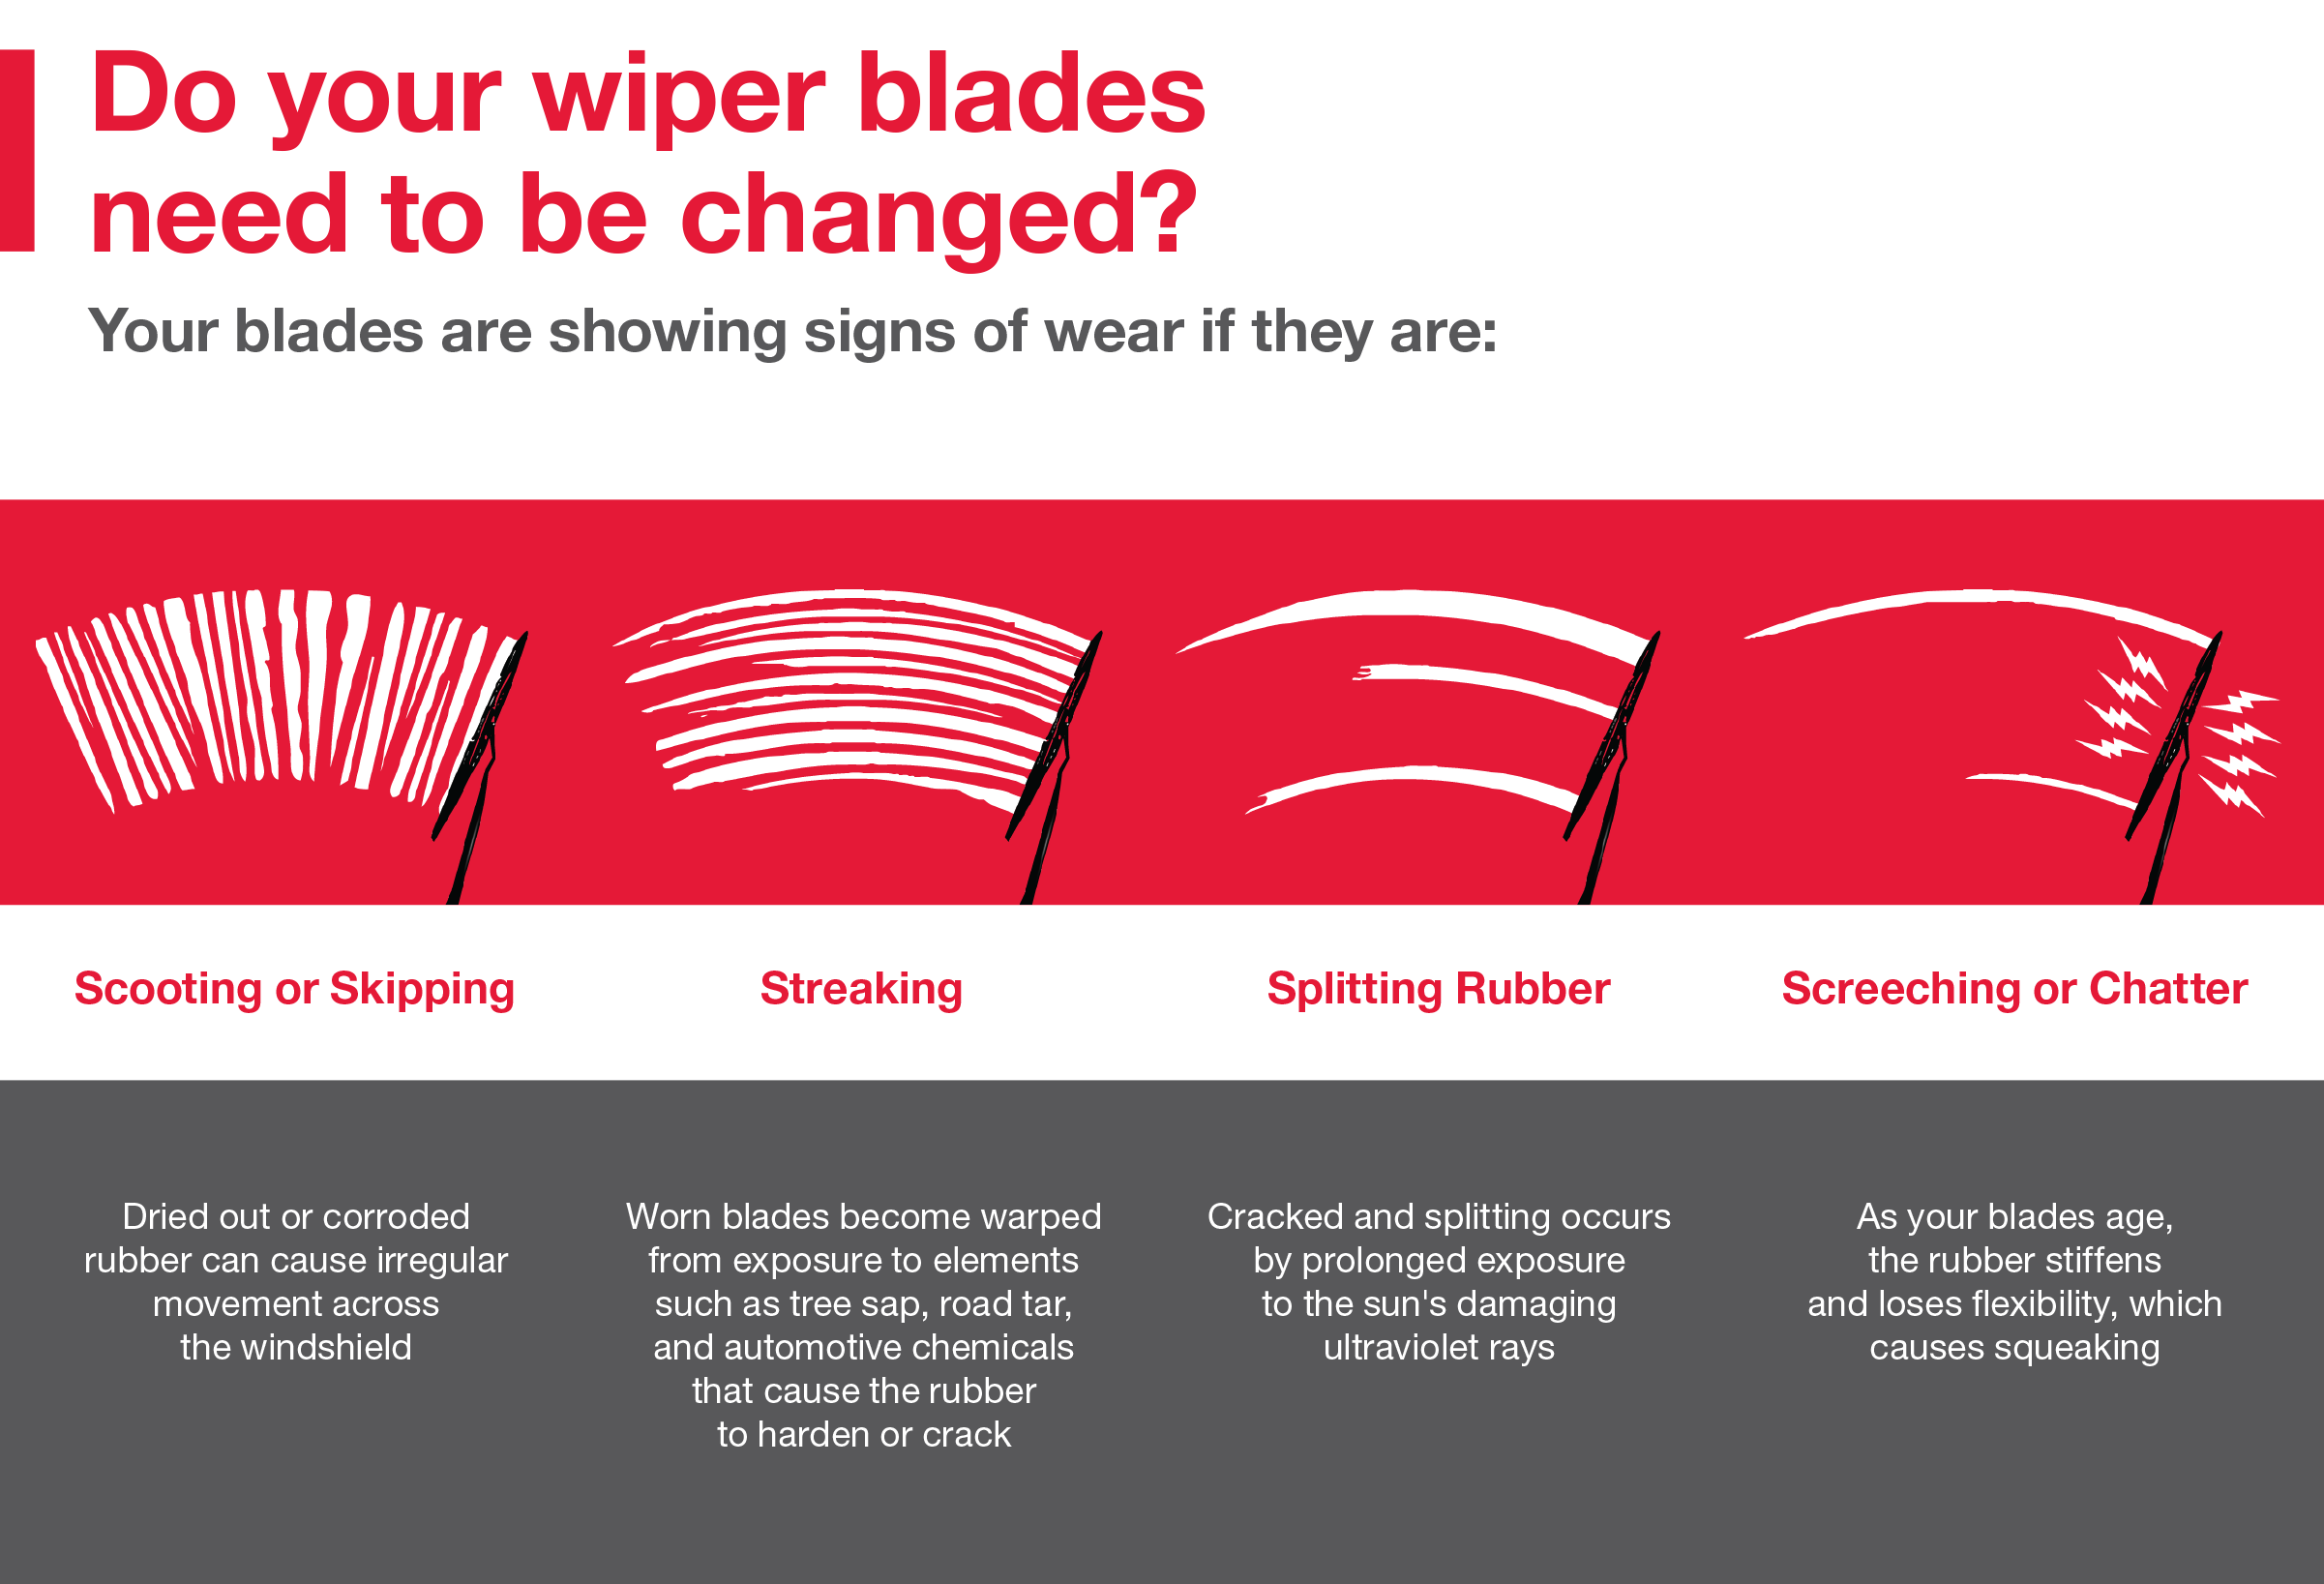 Do your wiper blades need to be changed? Call your local dealer for more info: (207)-405-0418